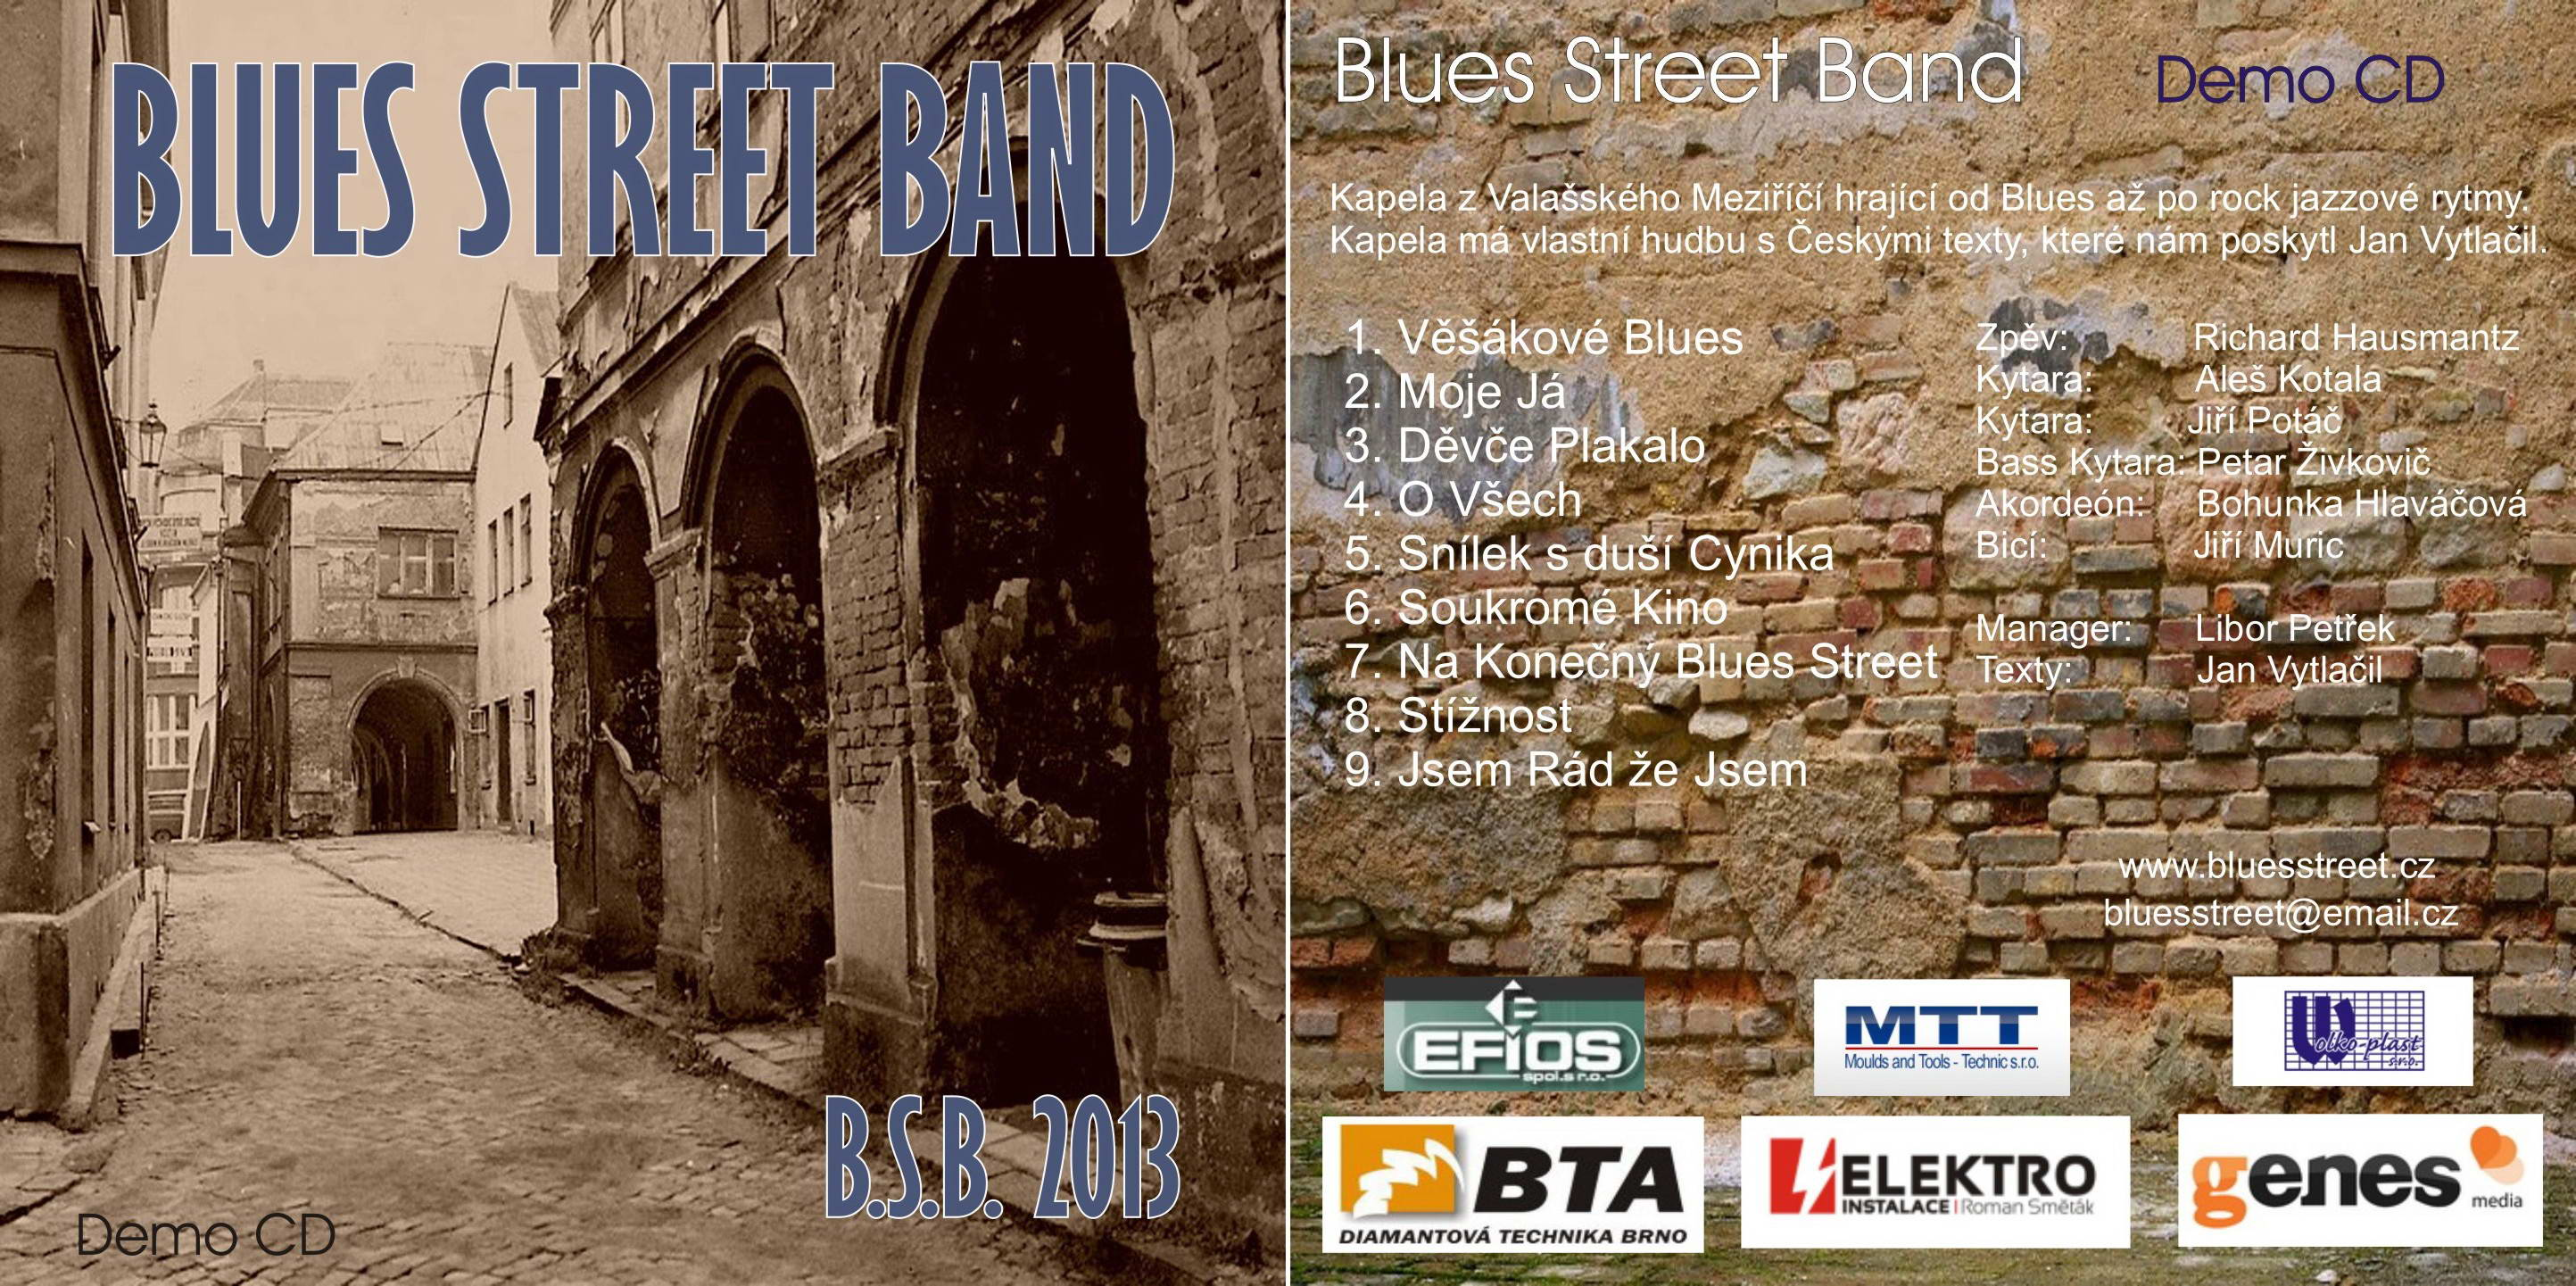 Blues Street band cover CD